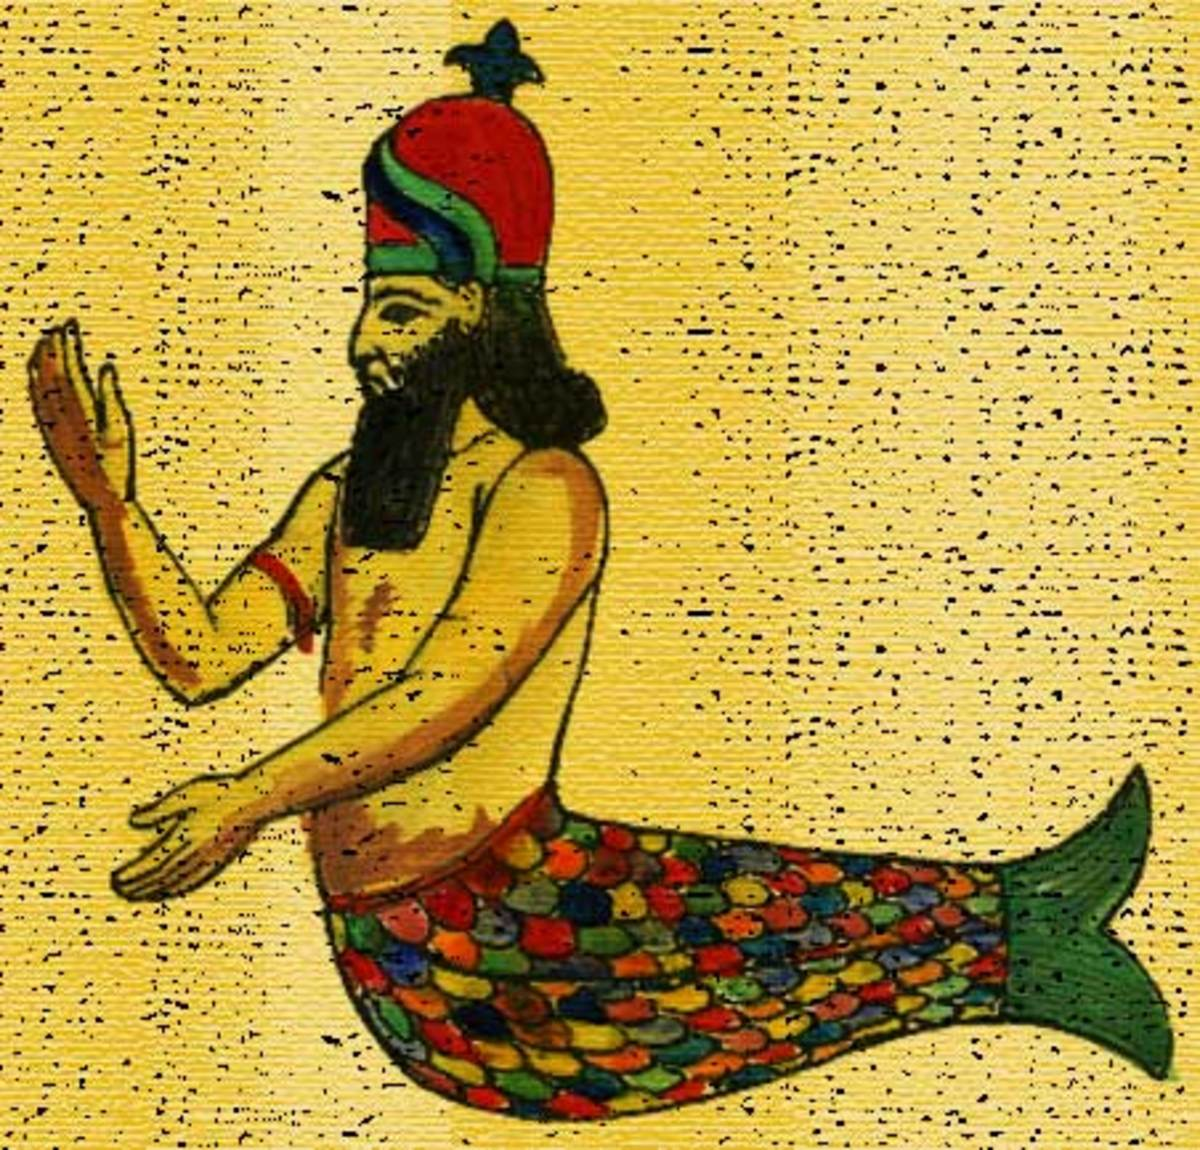 Dagon fish-god of the Philistines